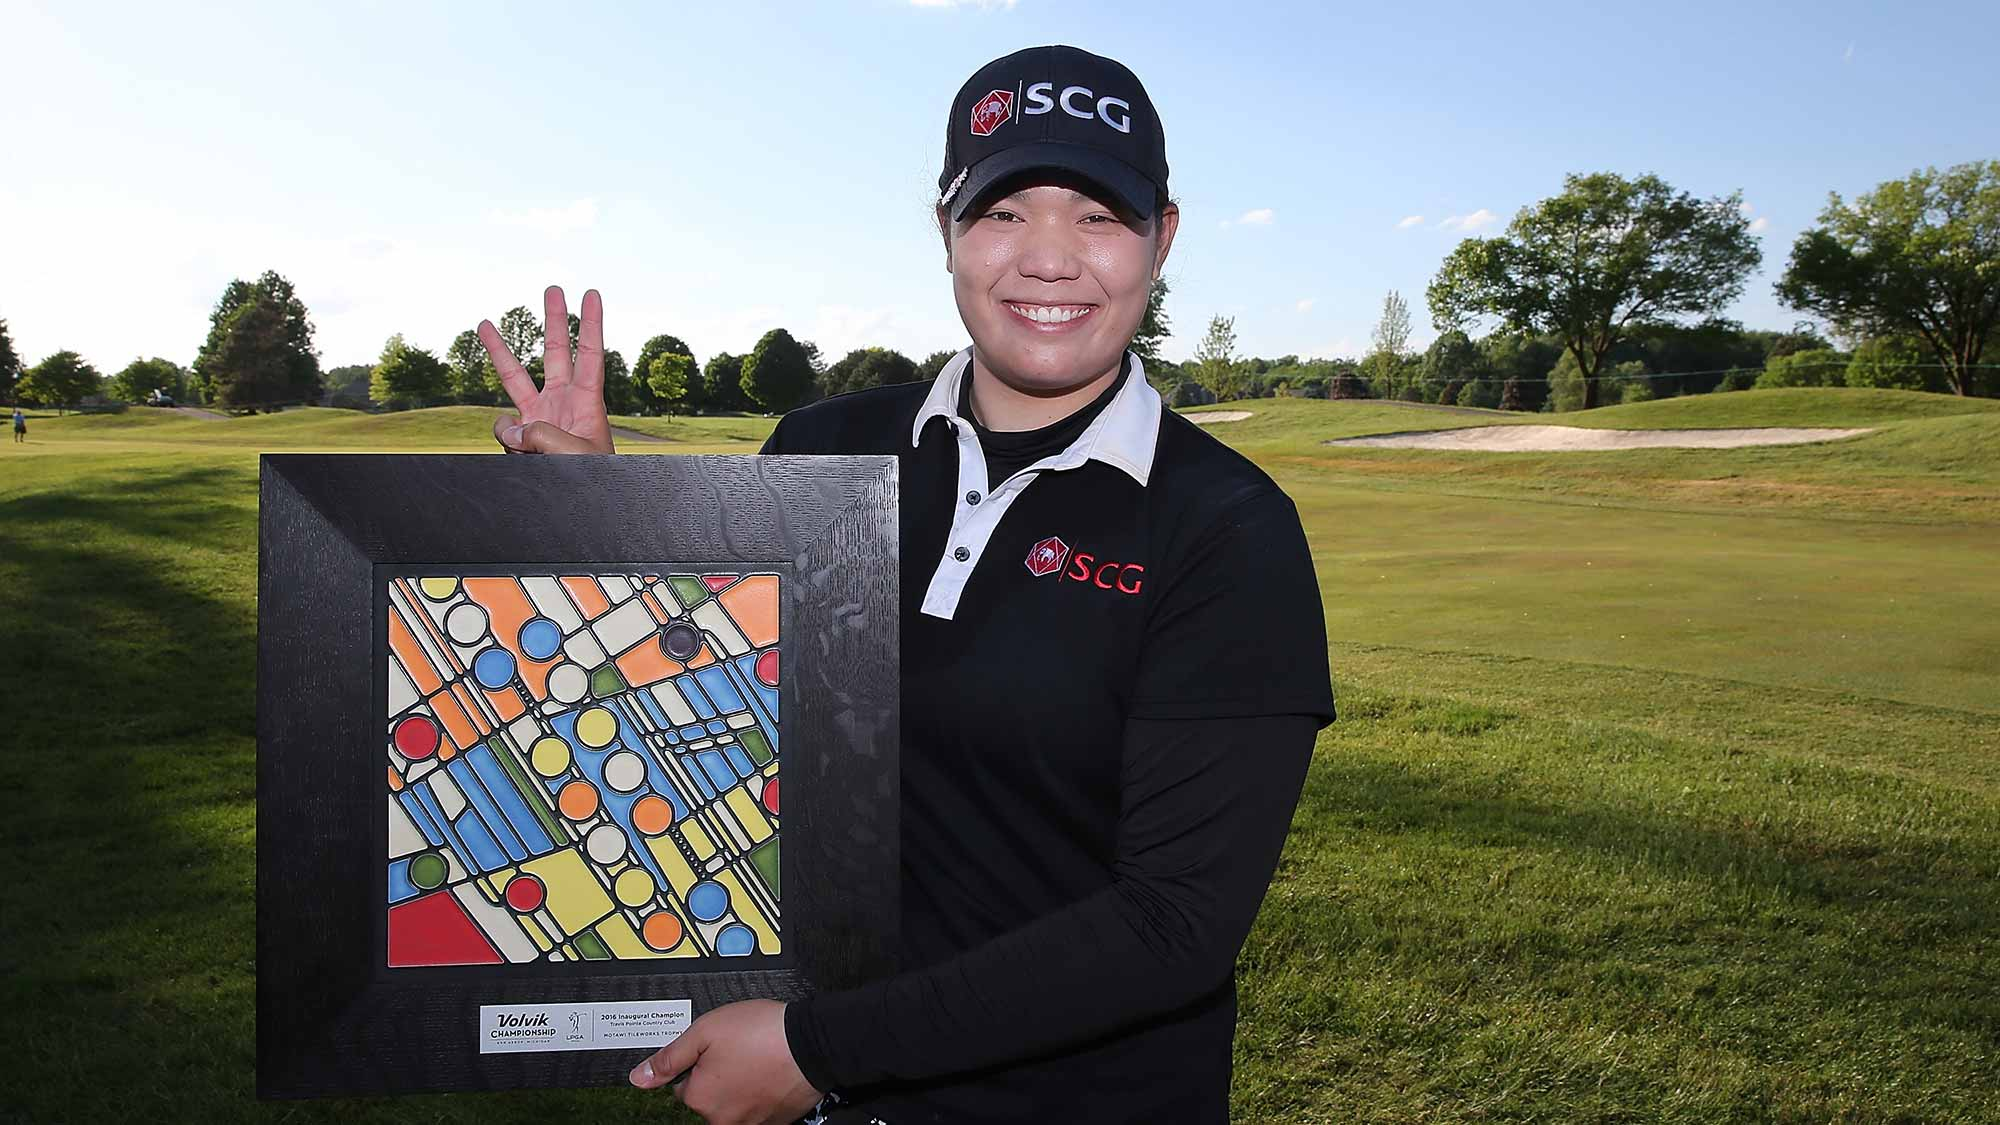 It was the third straight win for Jutanugarn in An Arbor